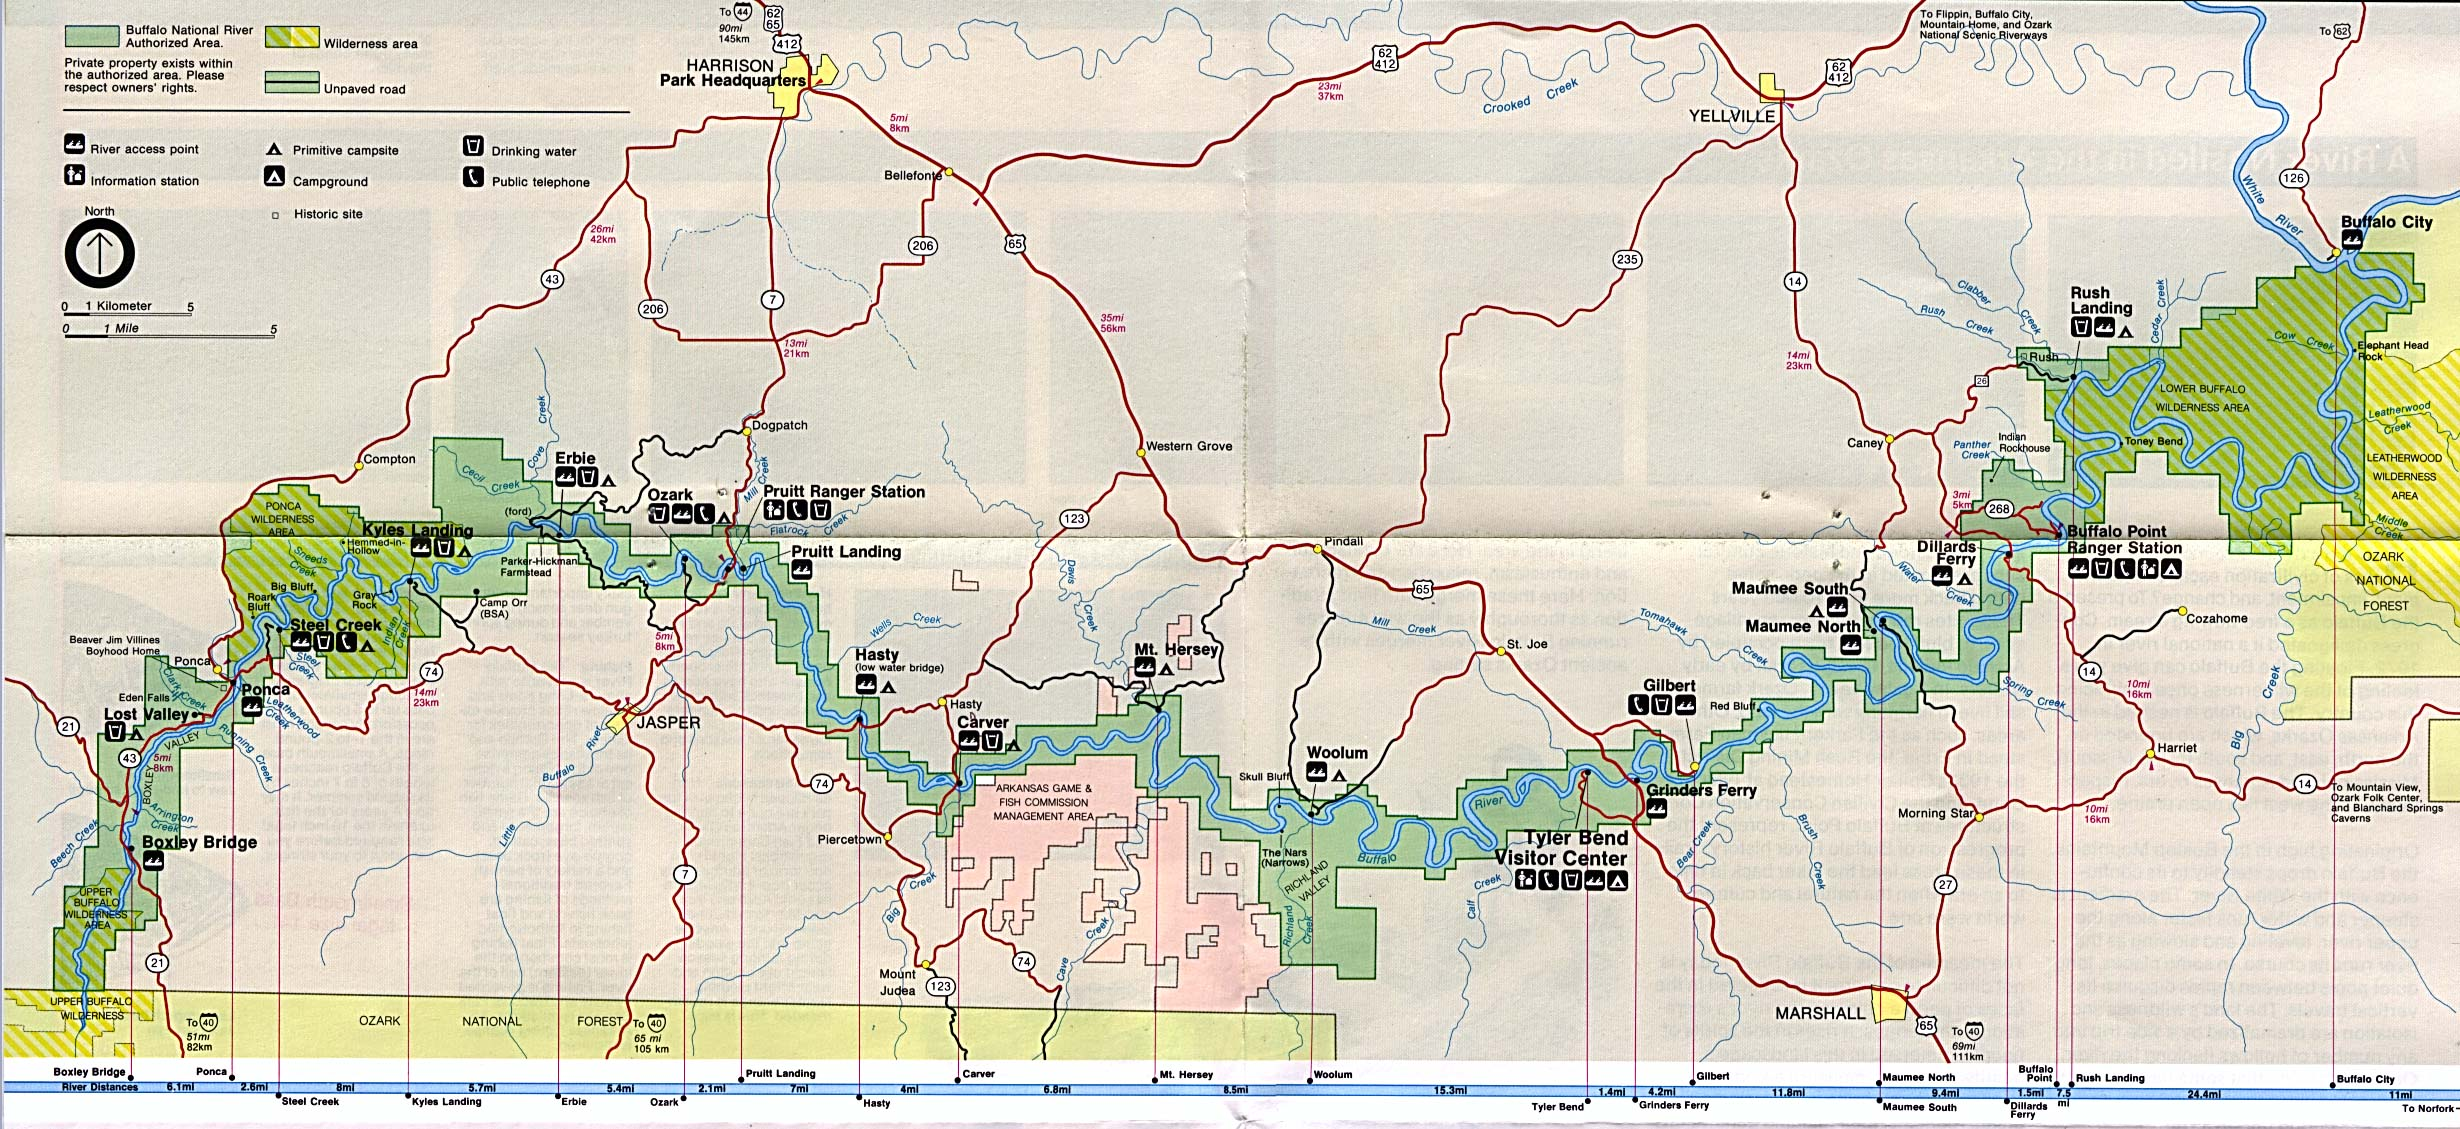 Free Download Arkansas National Park Maps - Arkansas on a us map